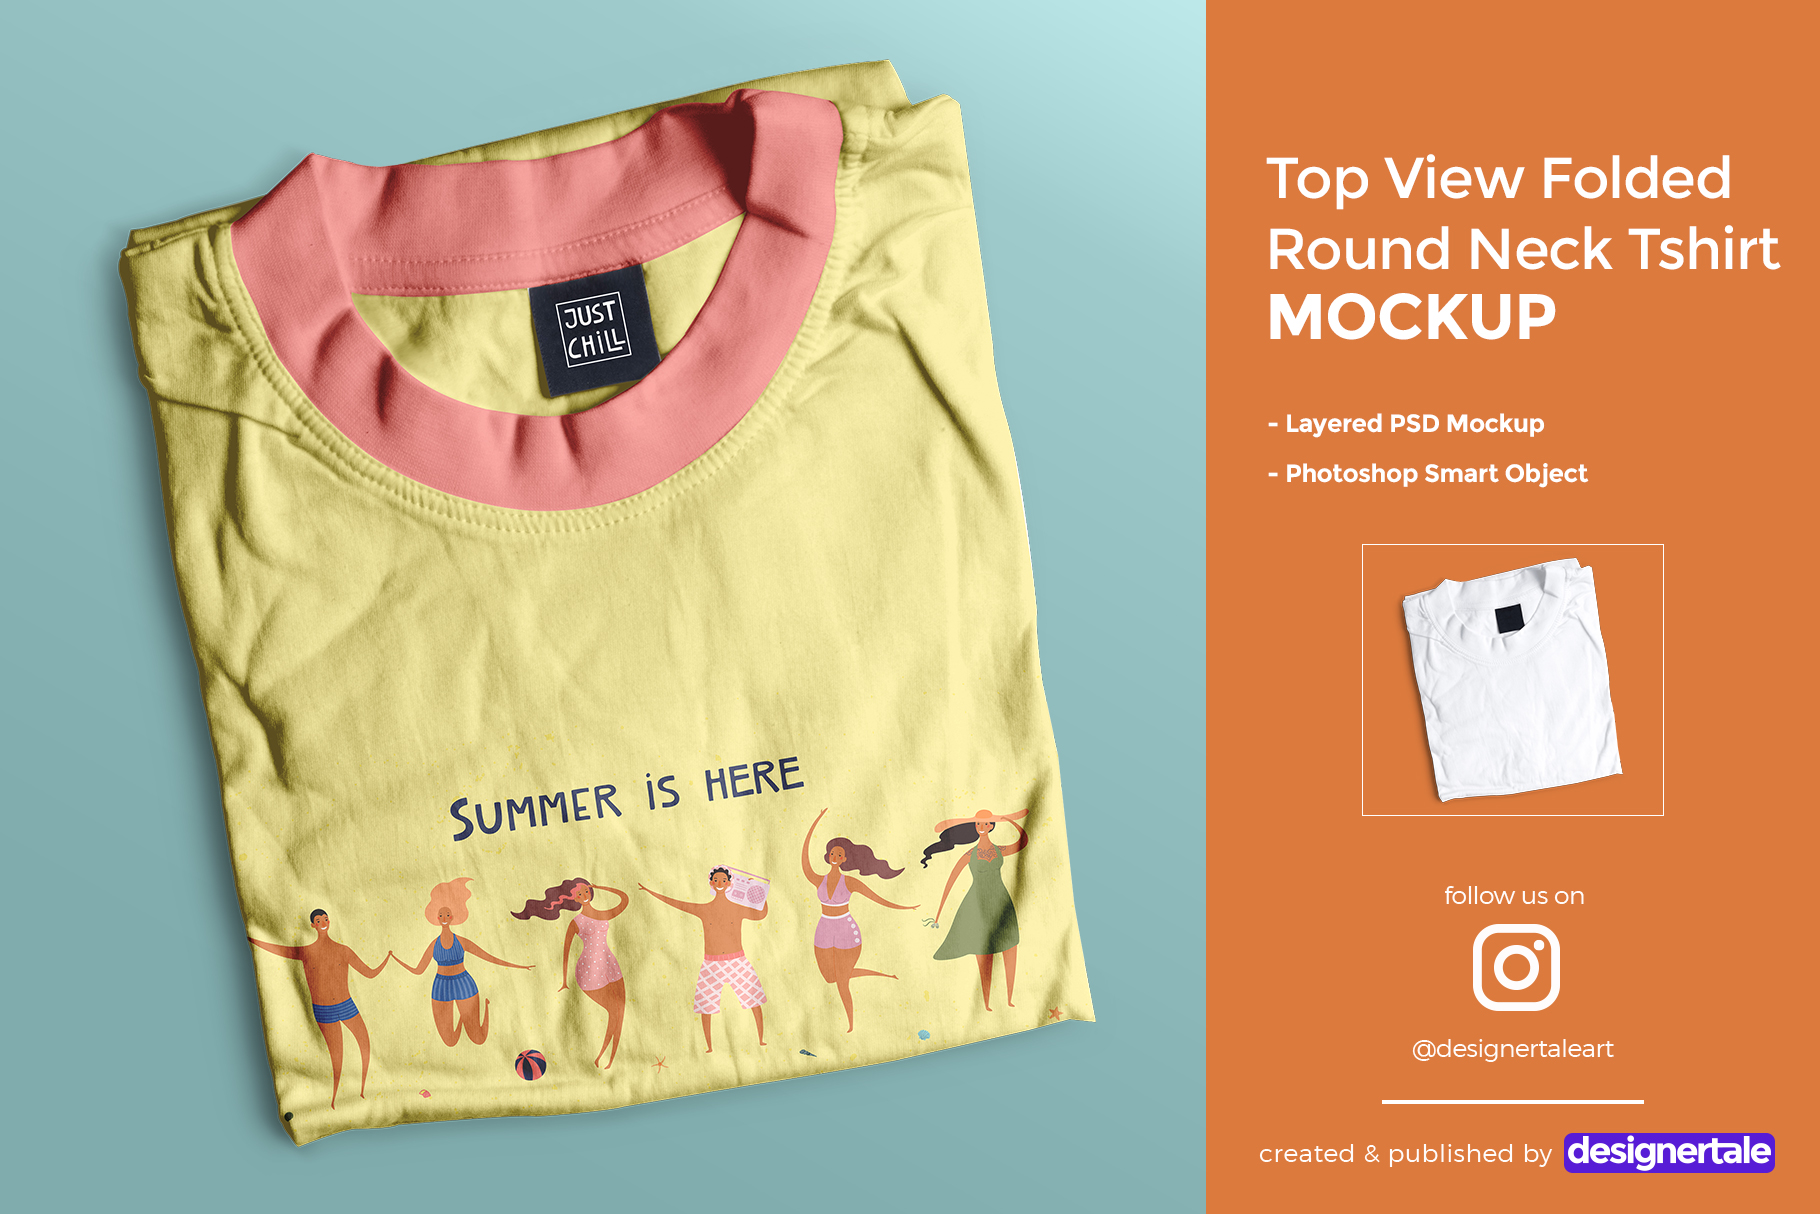 top view folded round neck tshirt mockup